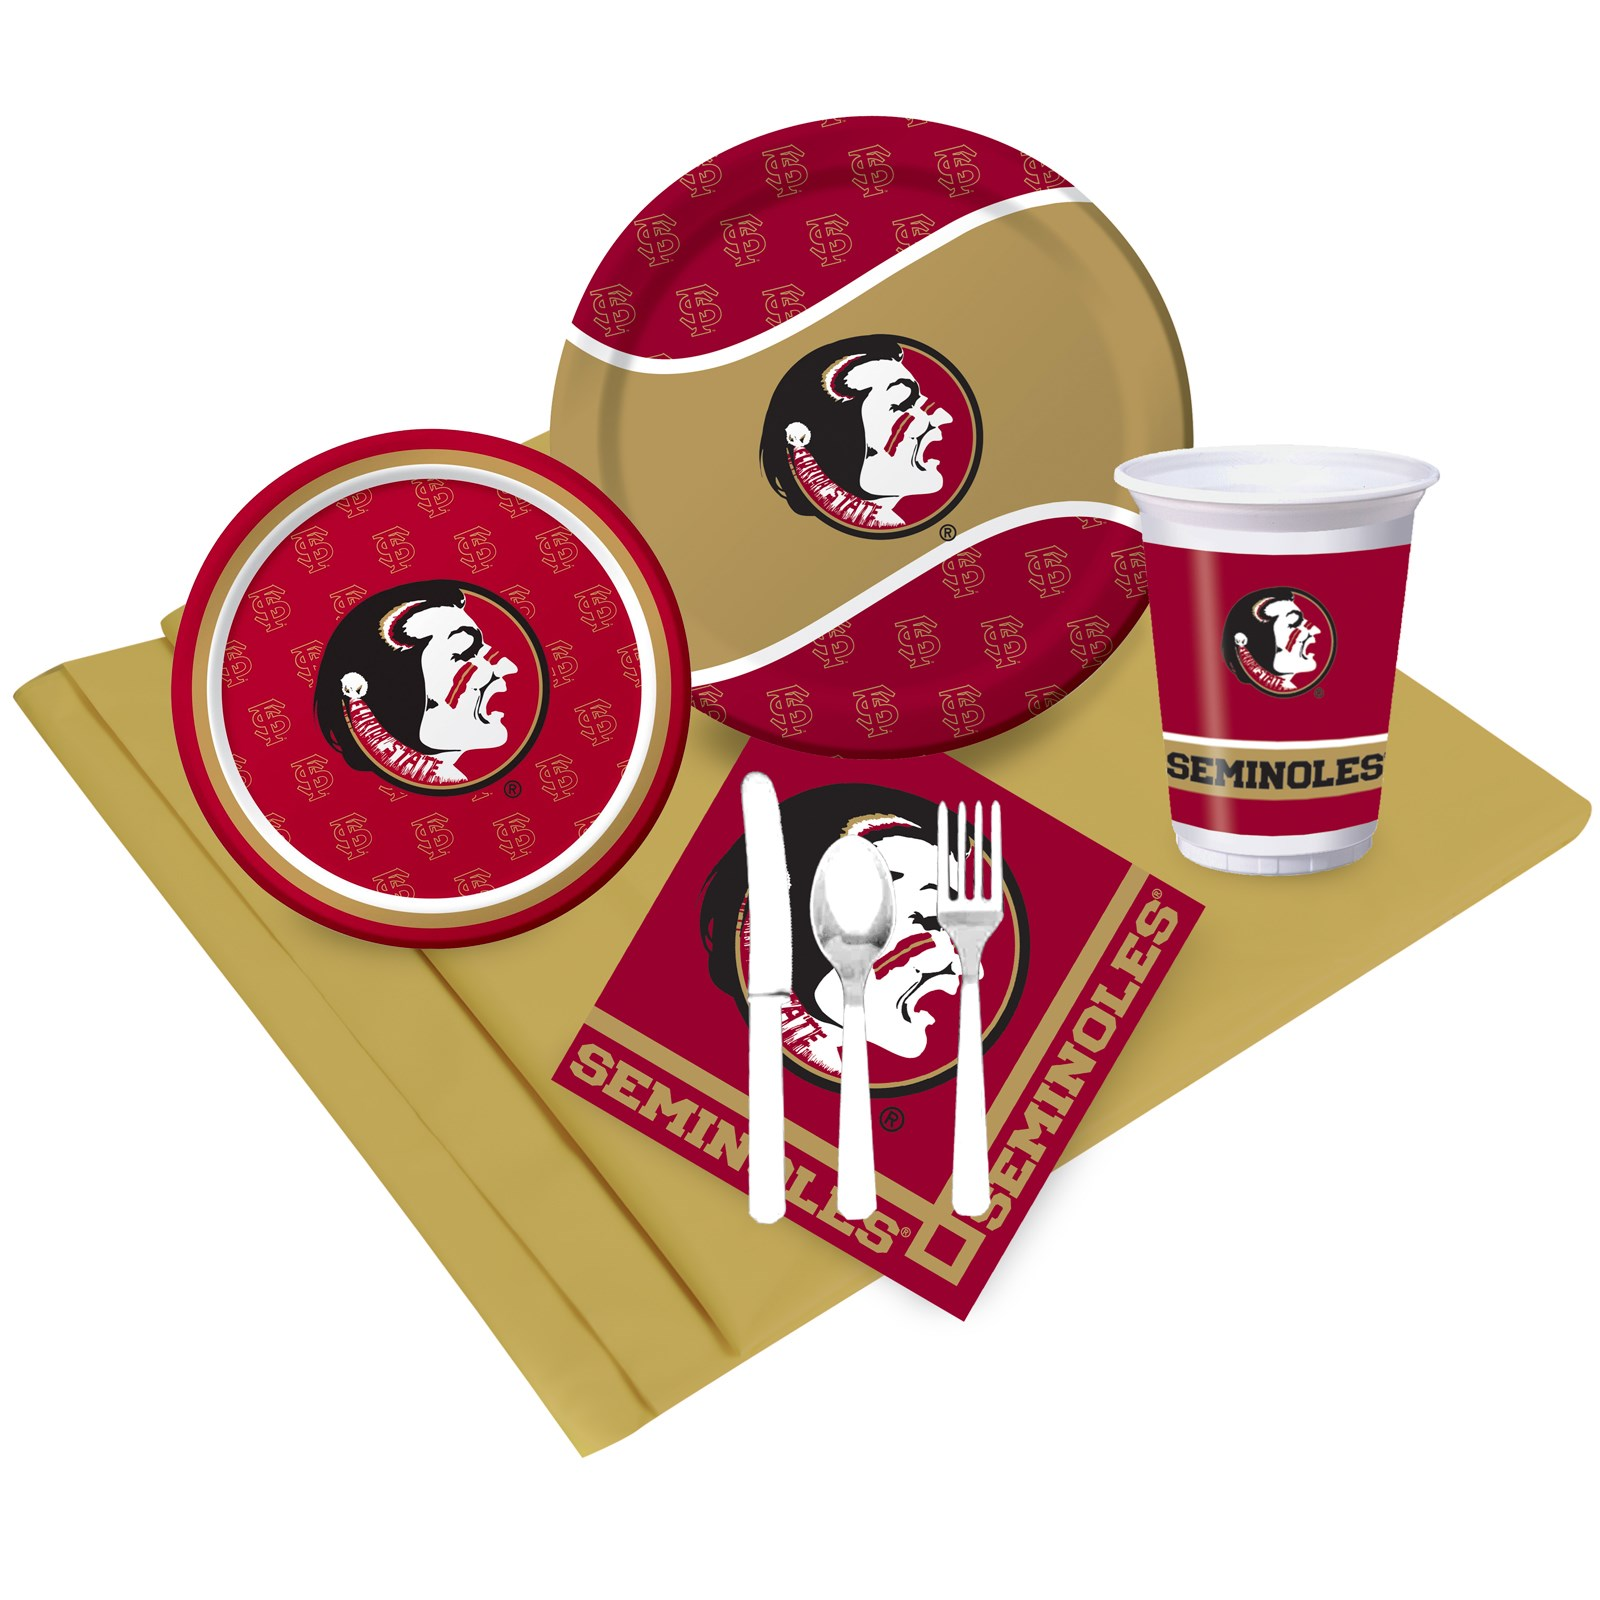 Image of Florida State University Seminoles Event Pack for 8